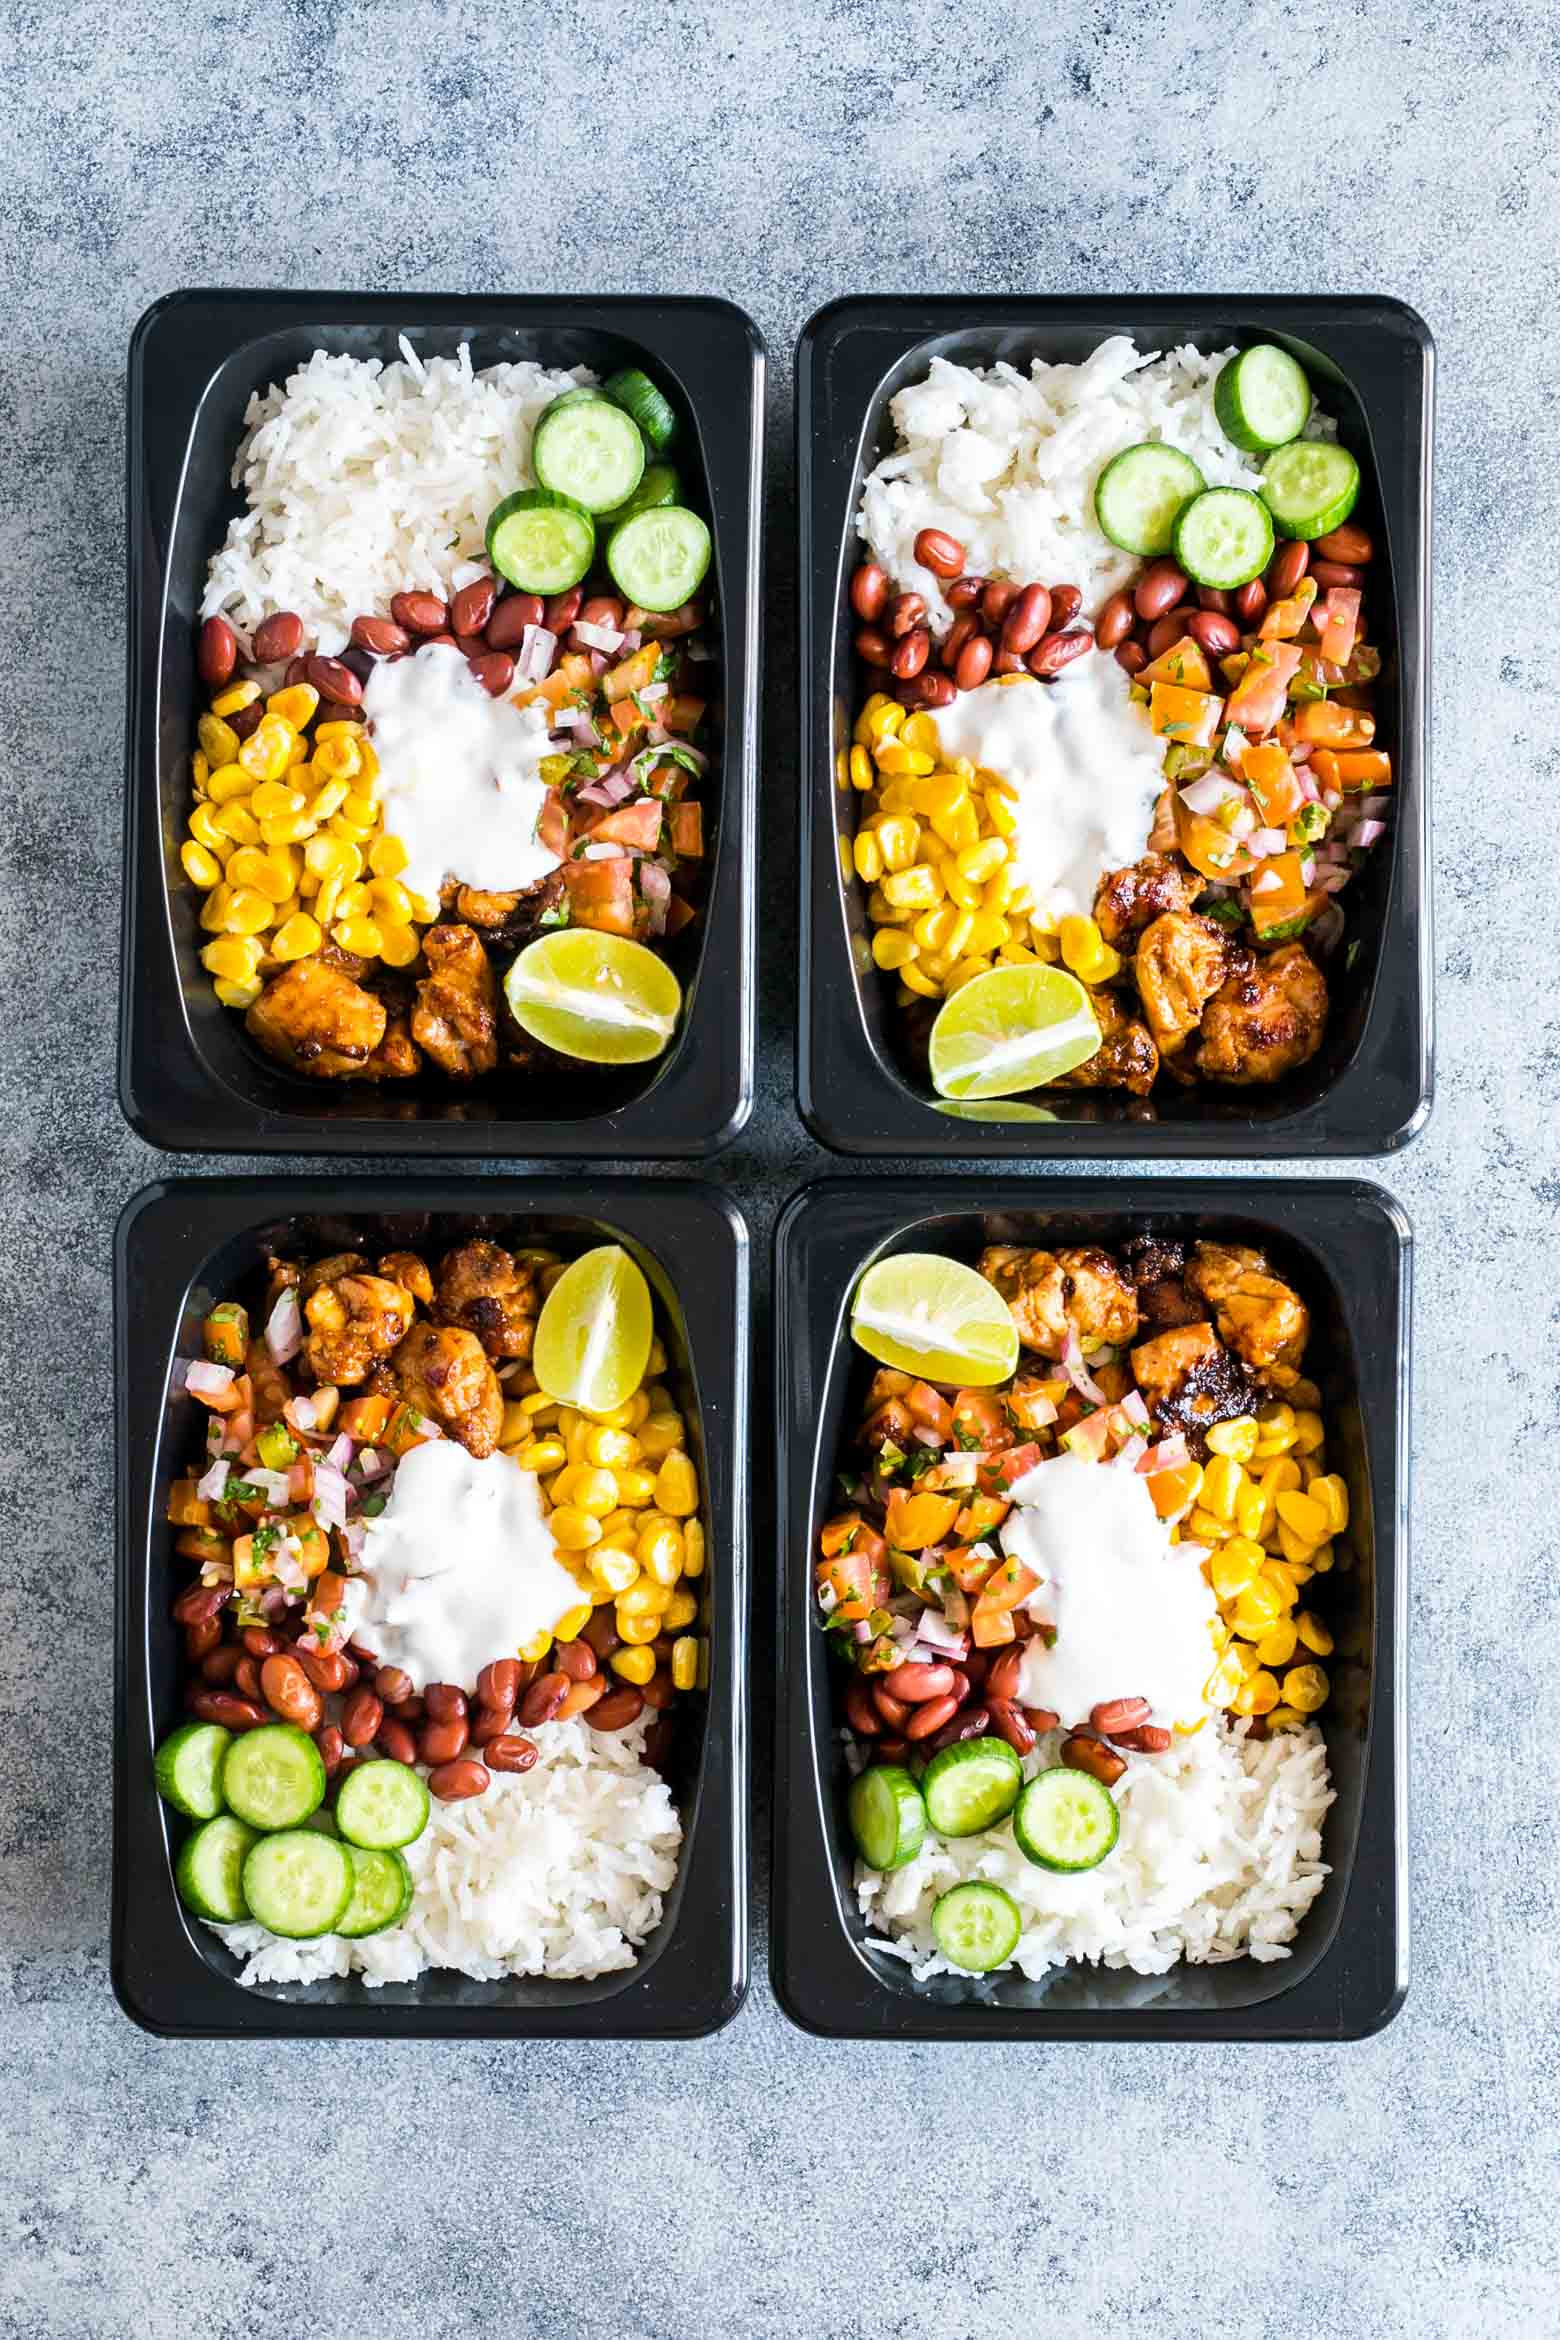 Healthy Meal Prep Lunches  Easy Chicken Burrito Meal Prep Bowls Gluten Free My